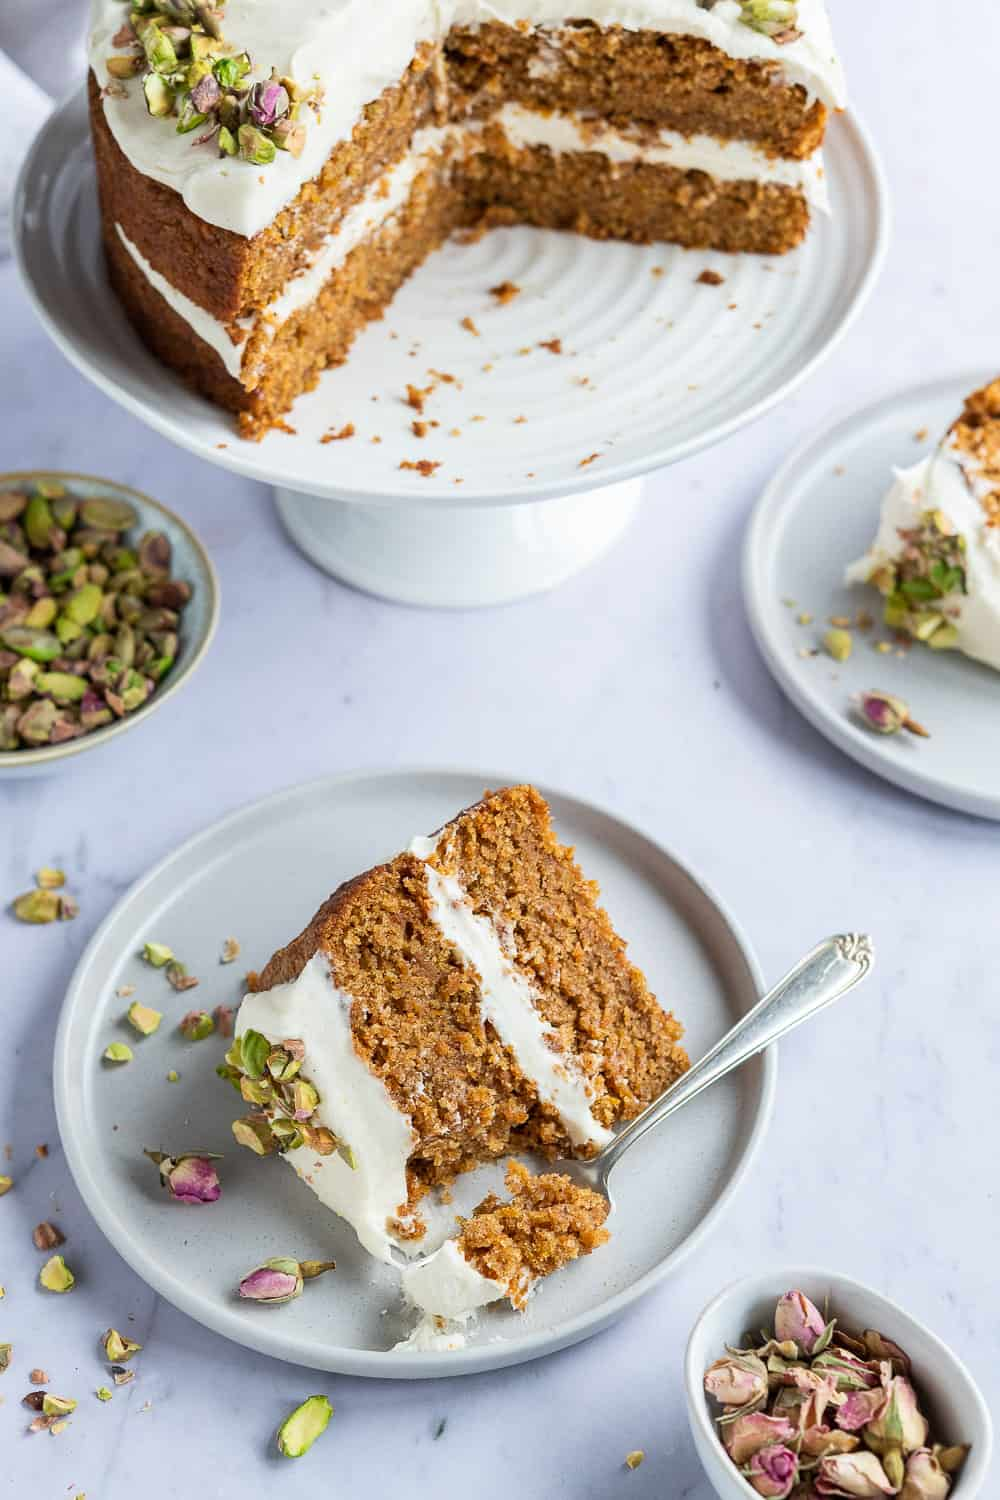 Two slices of vegan carrot cake on grey plates with the rest of the cake on a white cake stand.